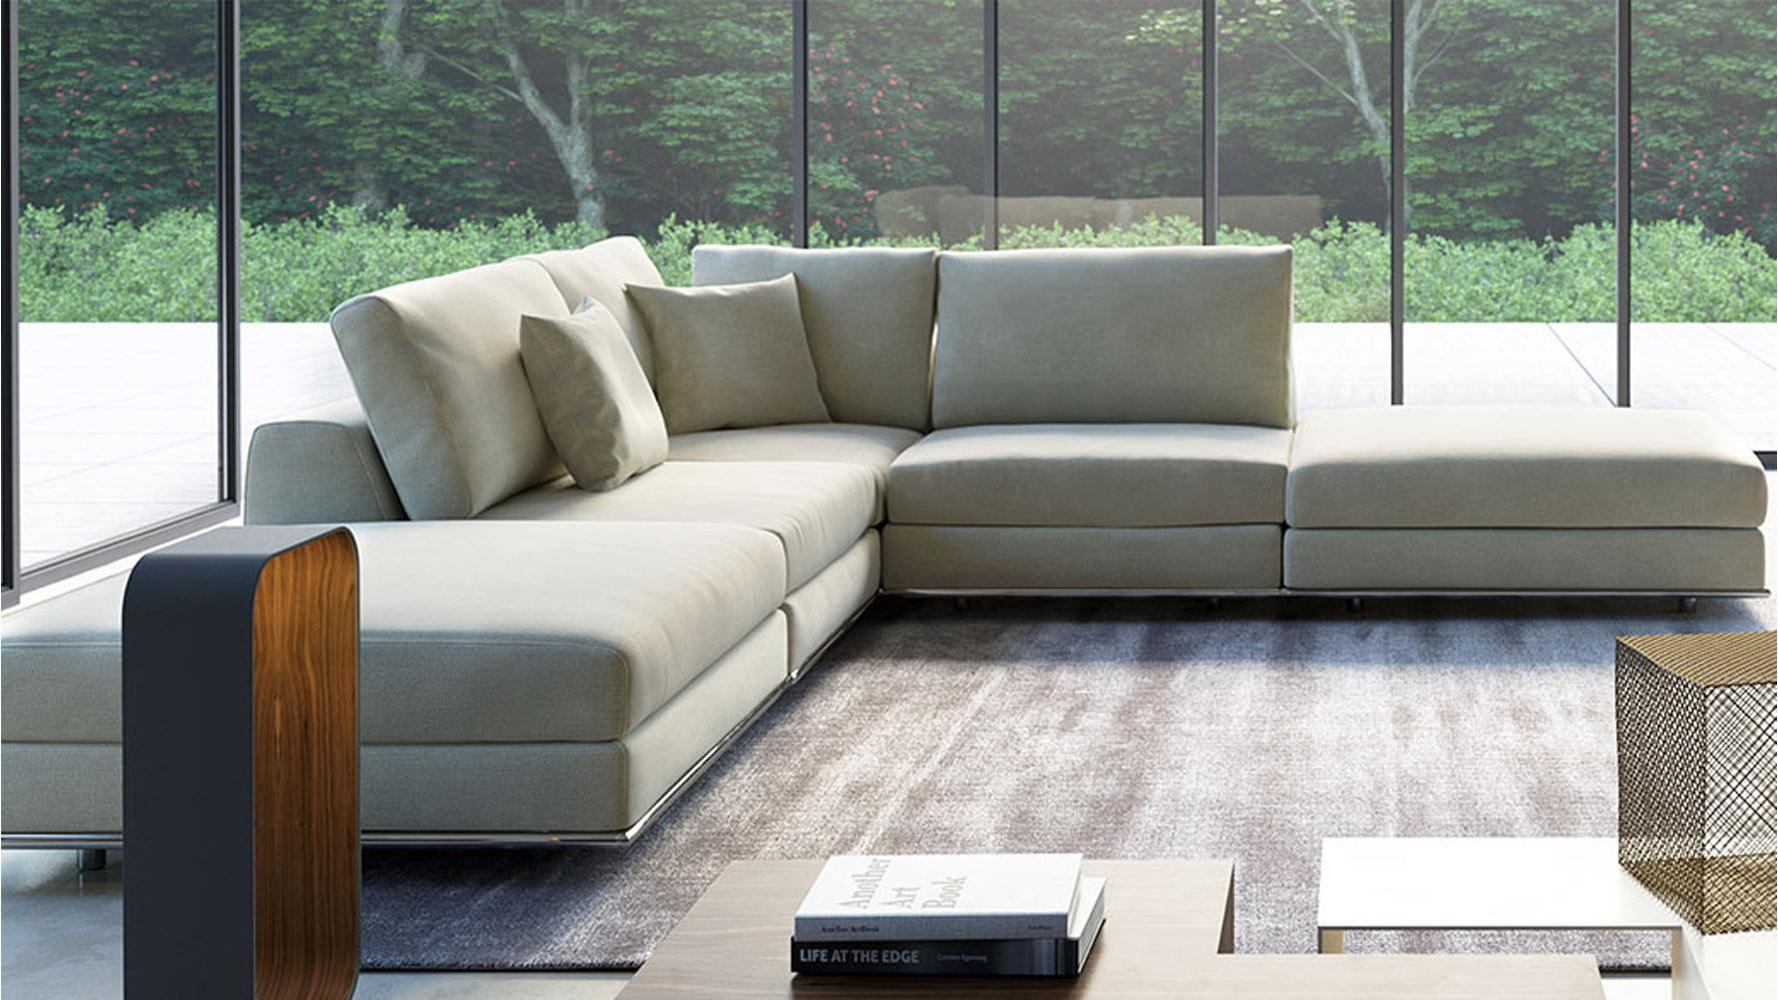 Modern Persis Armless Corner Sectional Sofa – Moonbeam   Zuri In Armless Sectional Sofas (Image 7 of 15)